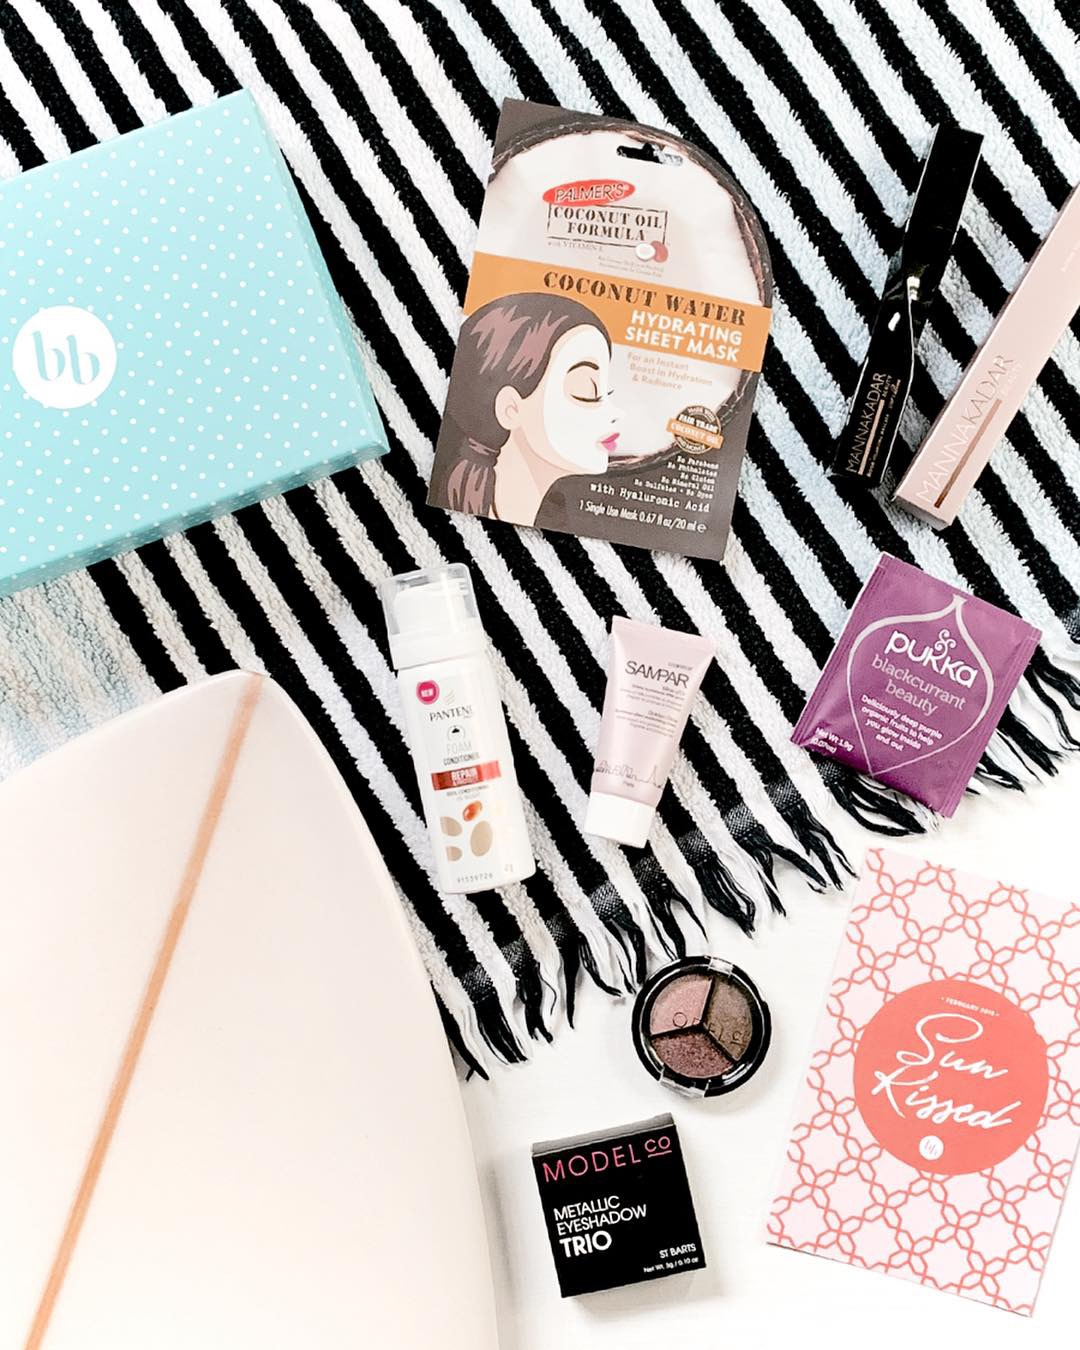 February 2019 Bellabox Beauty Products Subscription Box